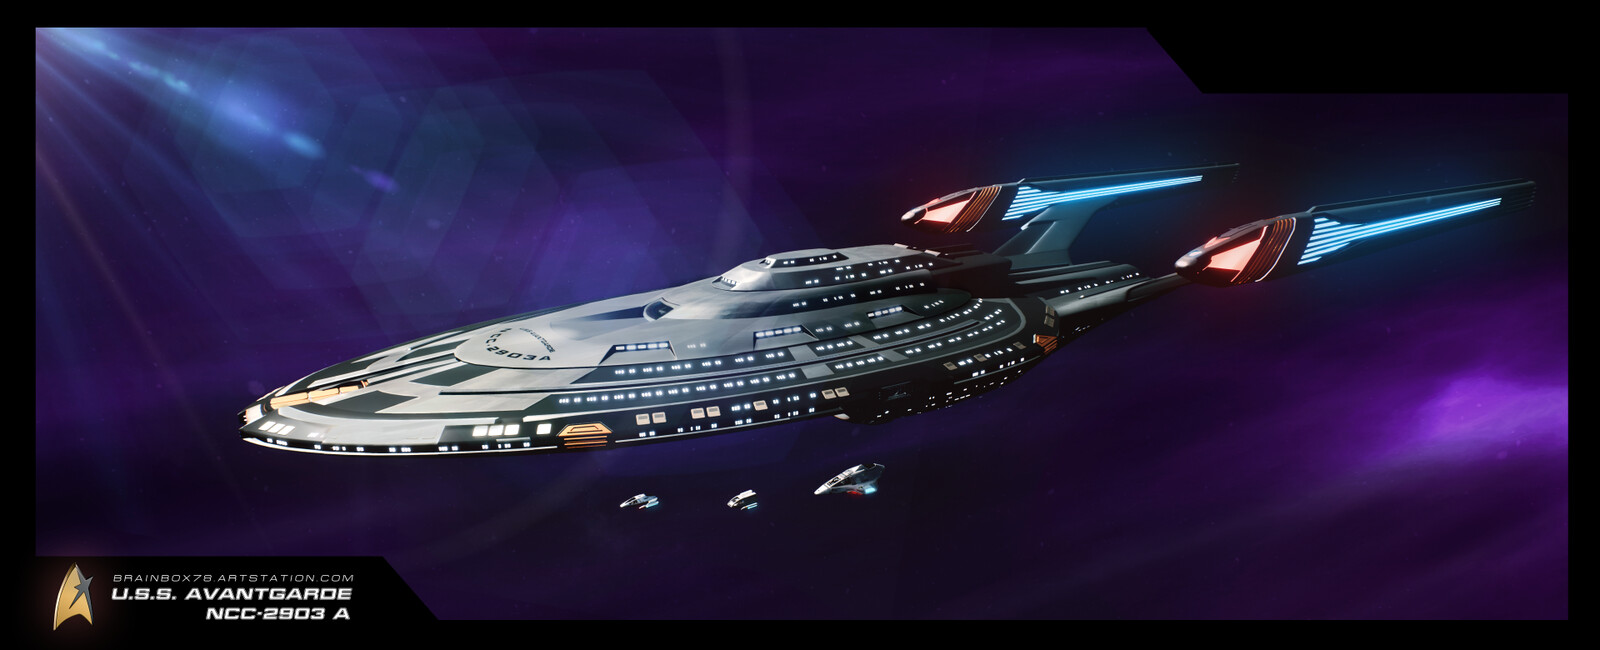 U.S.S. AVANTGARDE NCC-2903 WALLPAPER